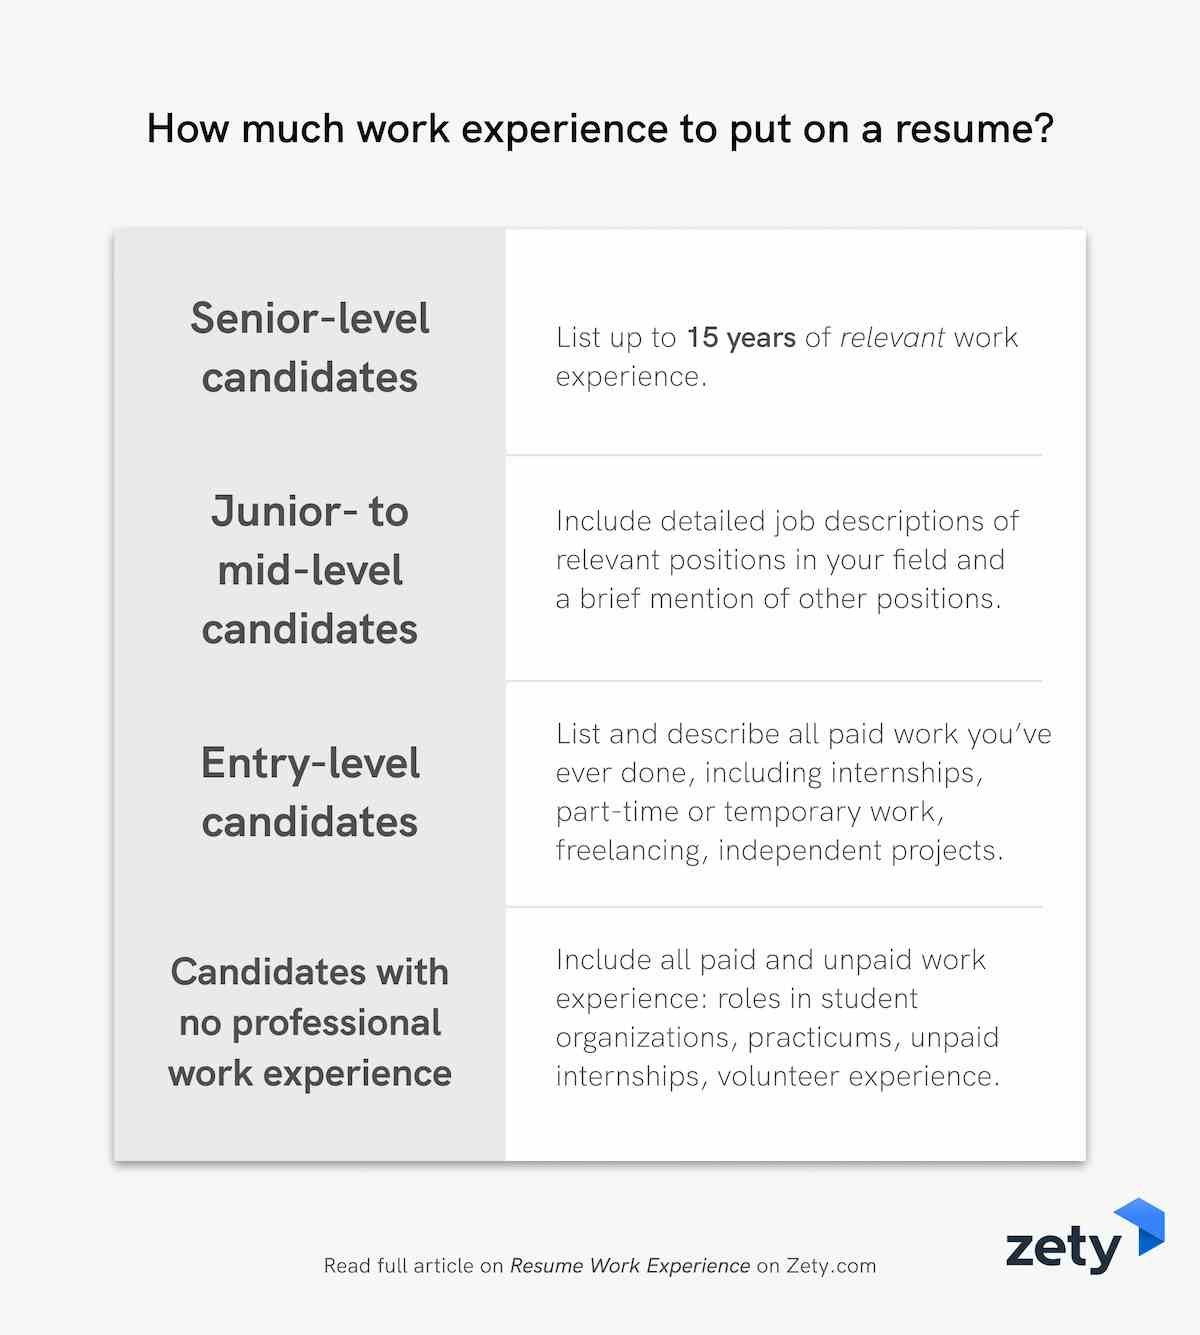 resume work experience history example job descriptions relevant much to put on hotel Resume Relevant Experience Resume